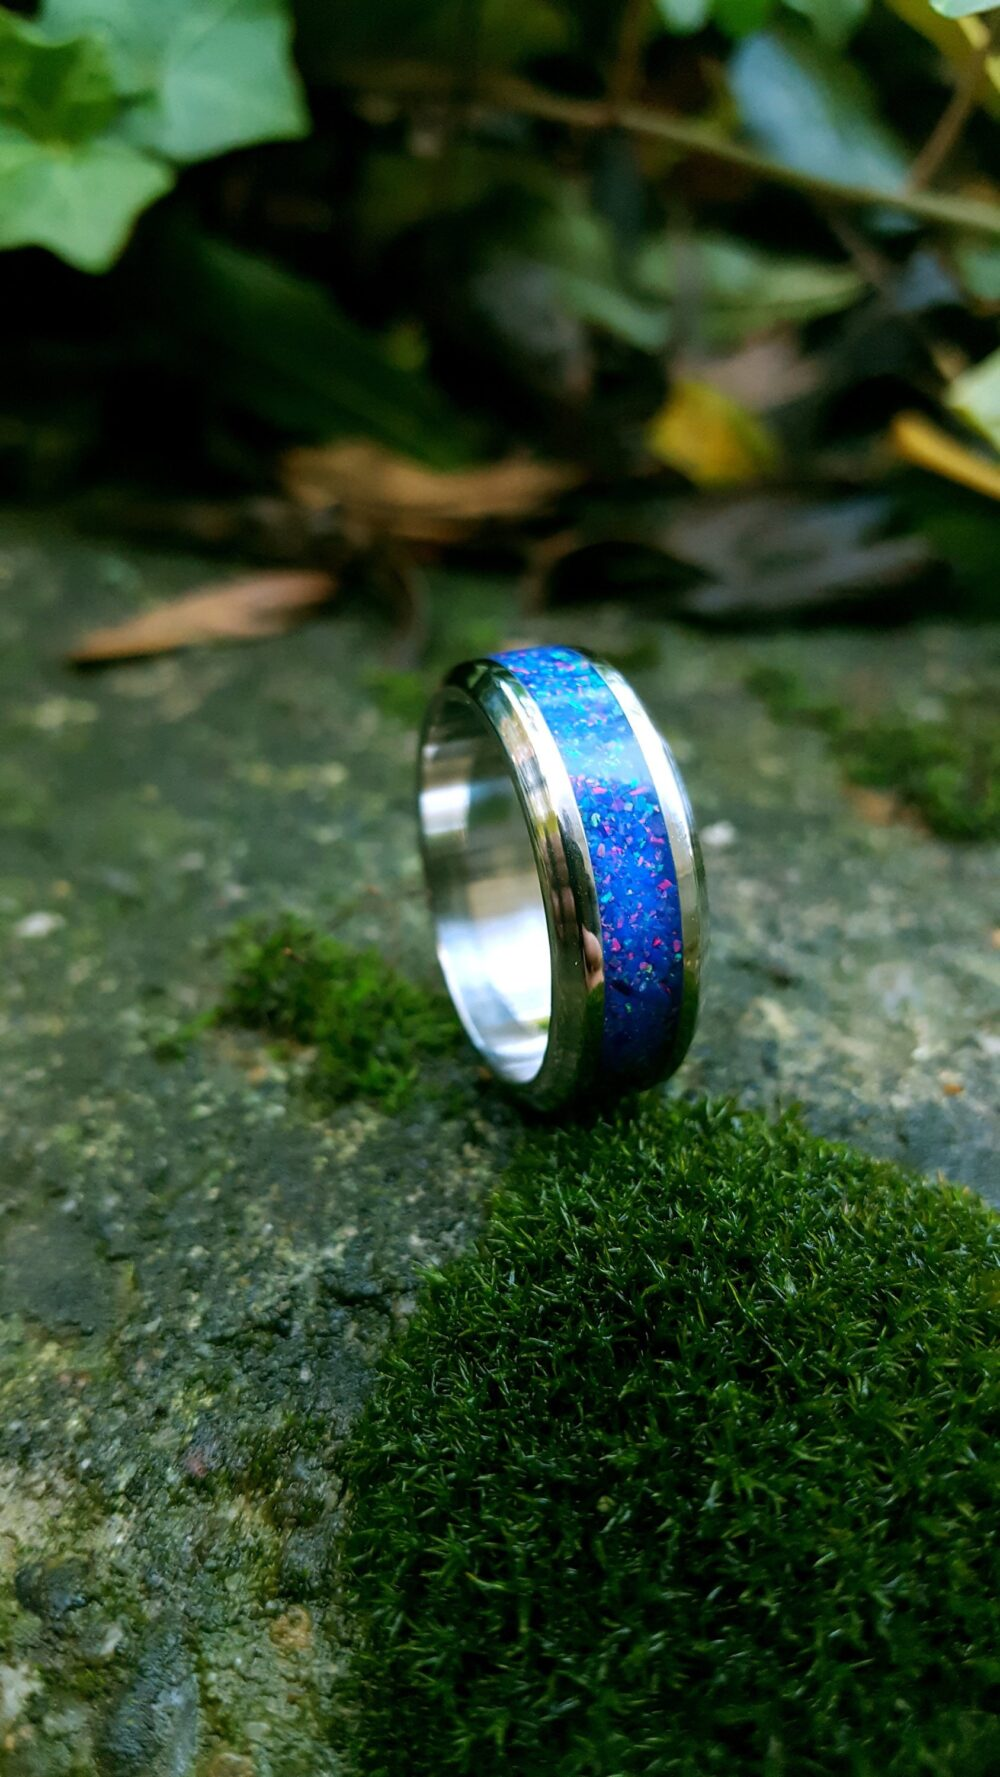 Wedding Ring, Stainless Steel Ring With Crushed Dark Blue Opal